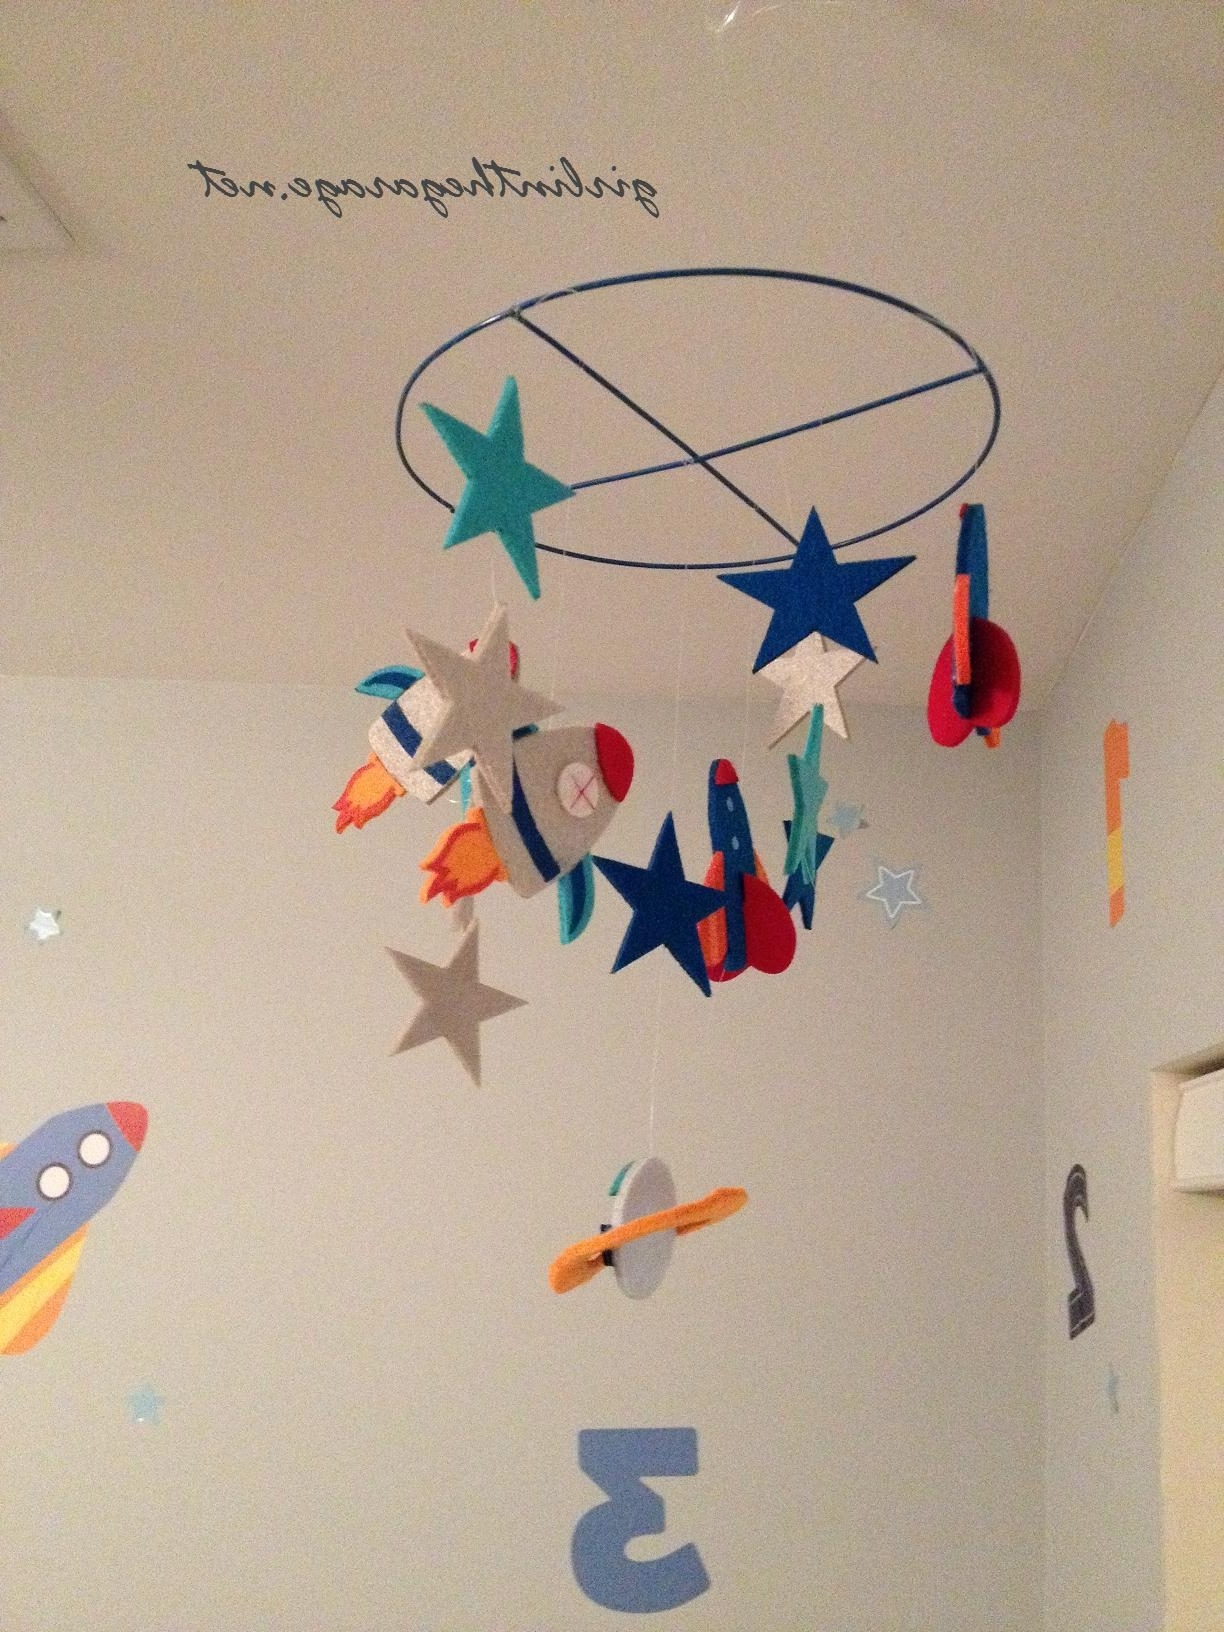 Fashionable 3d Solar System Wall Art Decor With Hanging Planets From Ceiling 3d Solar System Glow In The Dark (View 6 of 15)